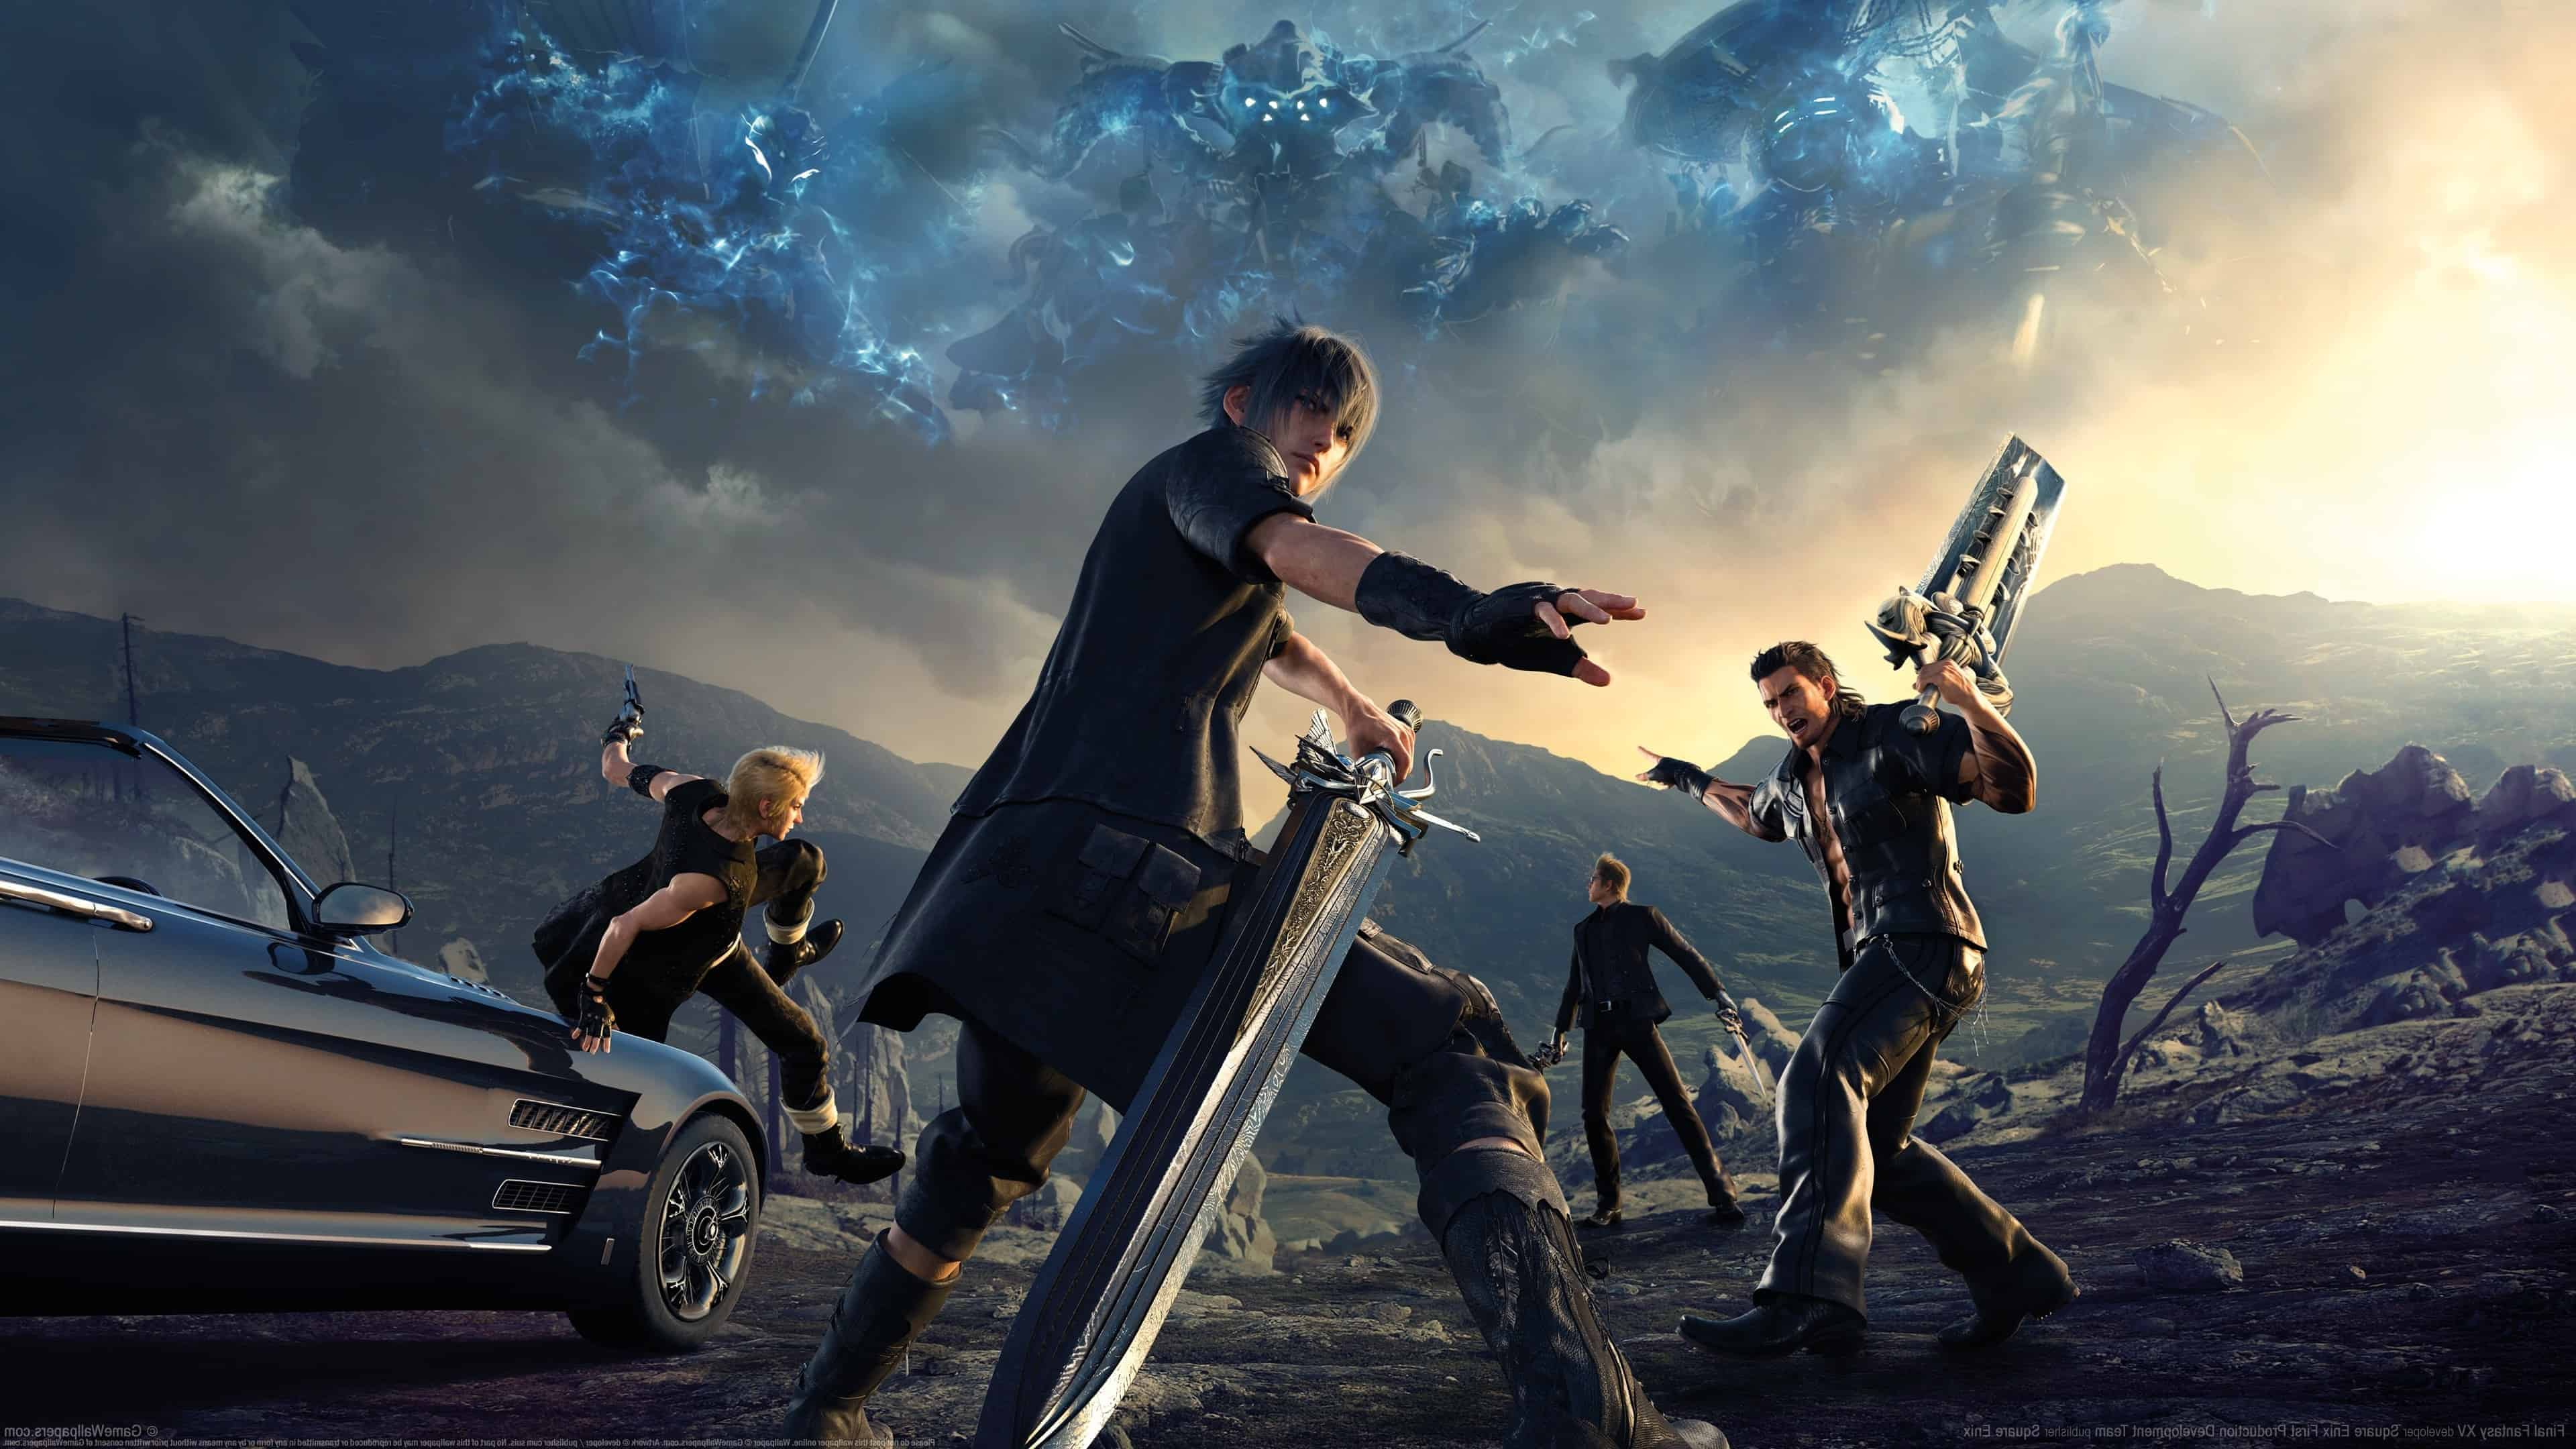 Final Fantasy Xv 4k Wallpapers